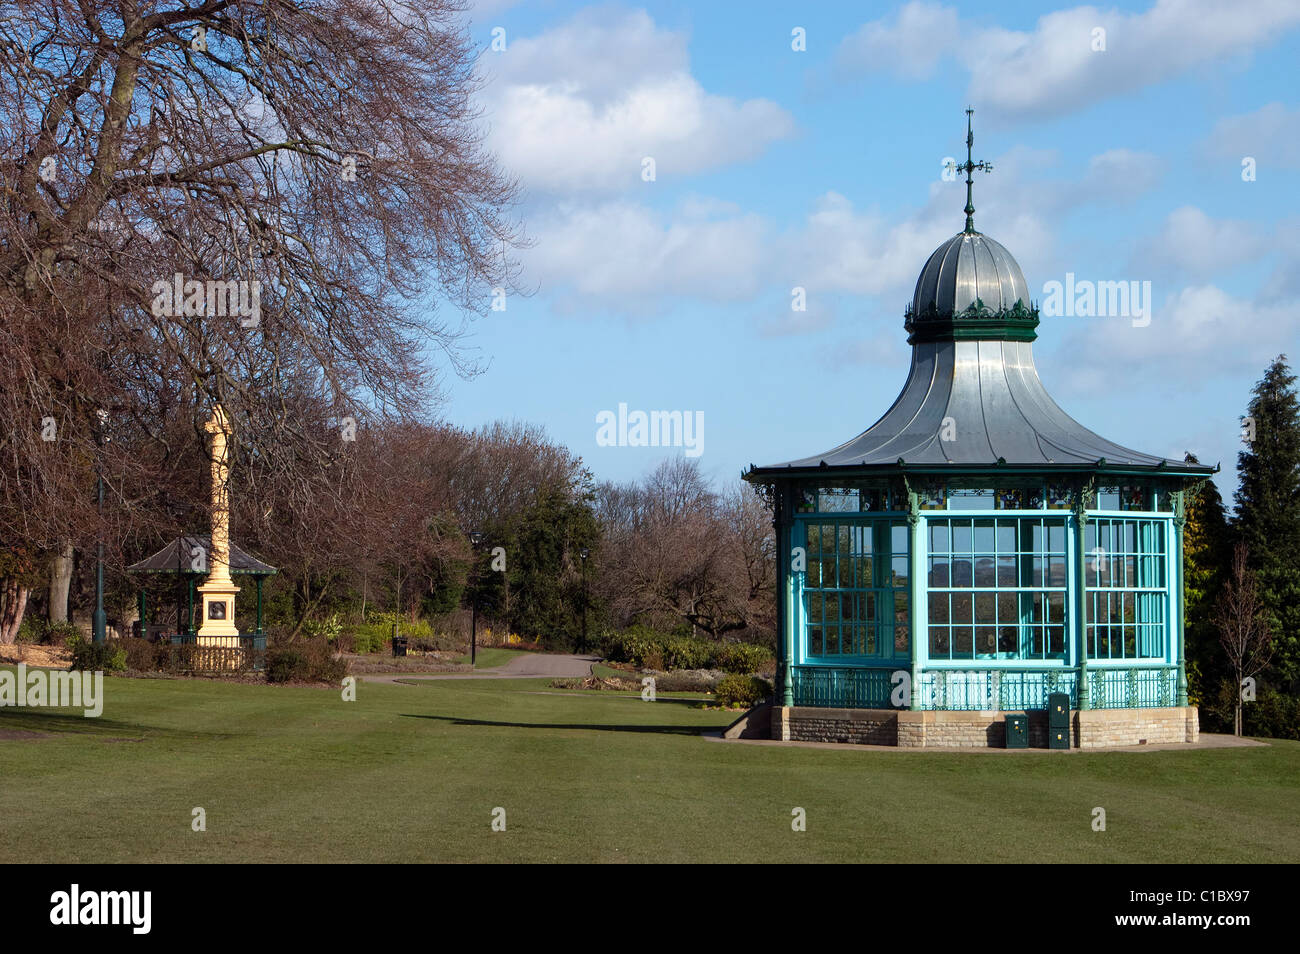 Godfrey Sykes Memorial and Bandstand, Weston Park Sheffield - Stock Image